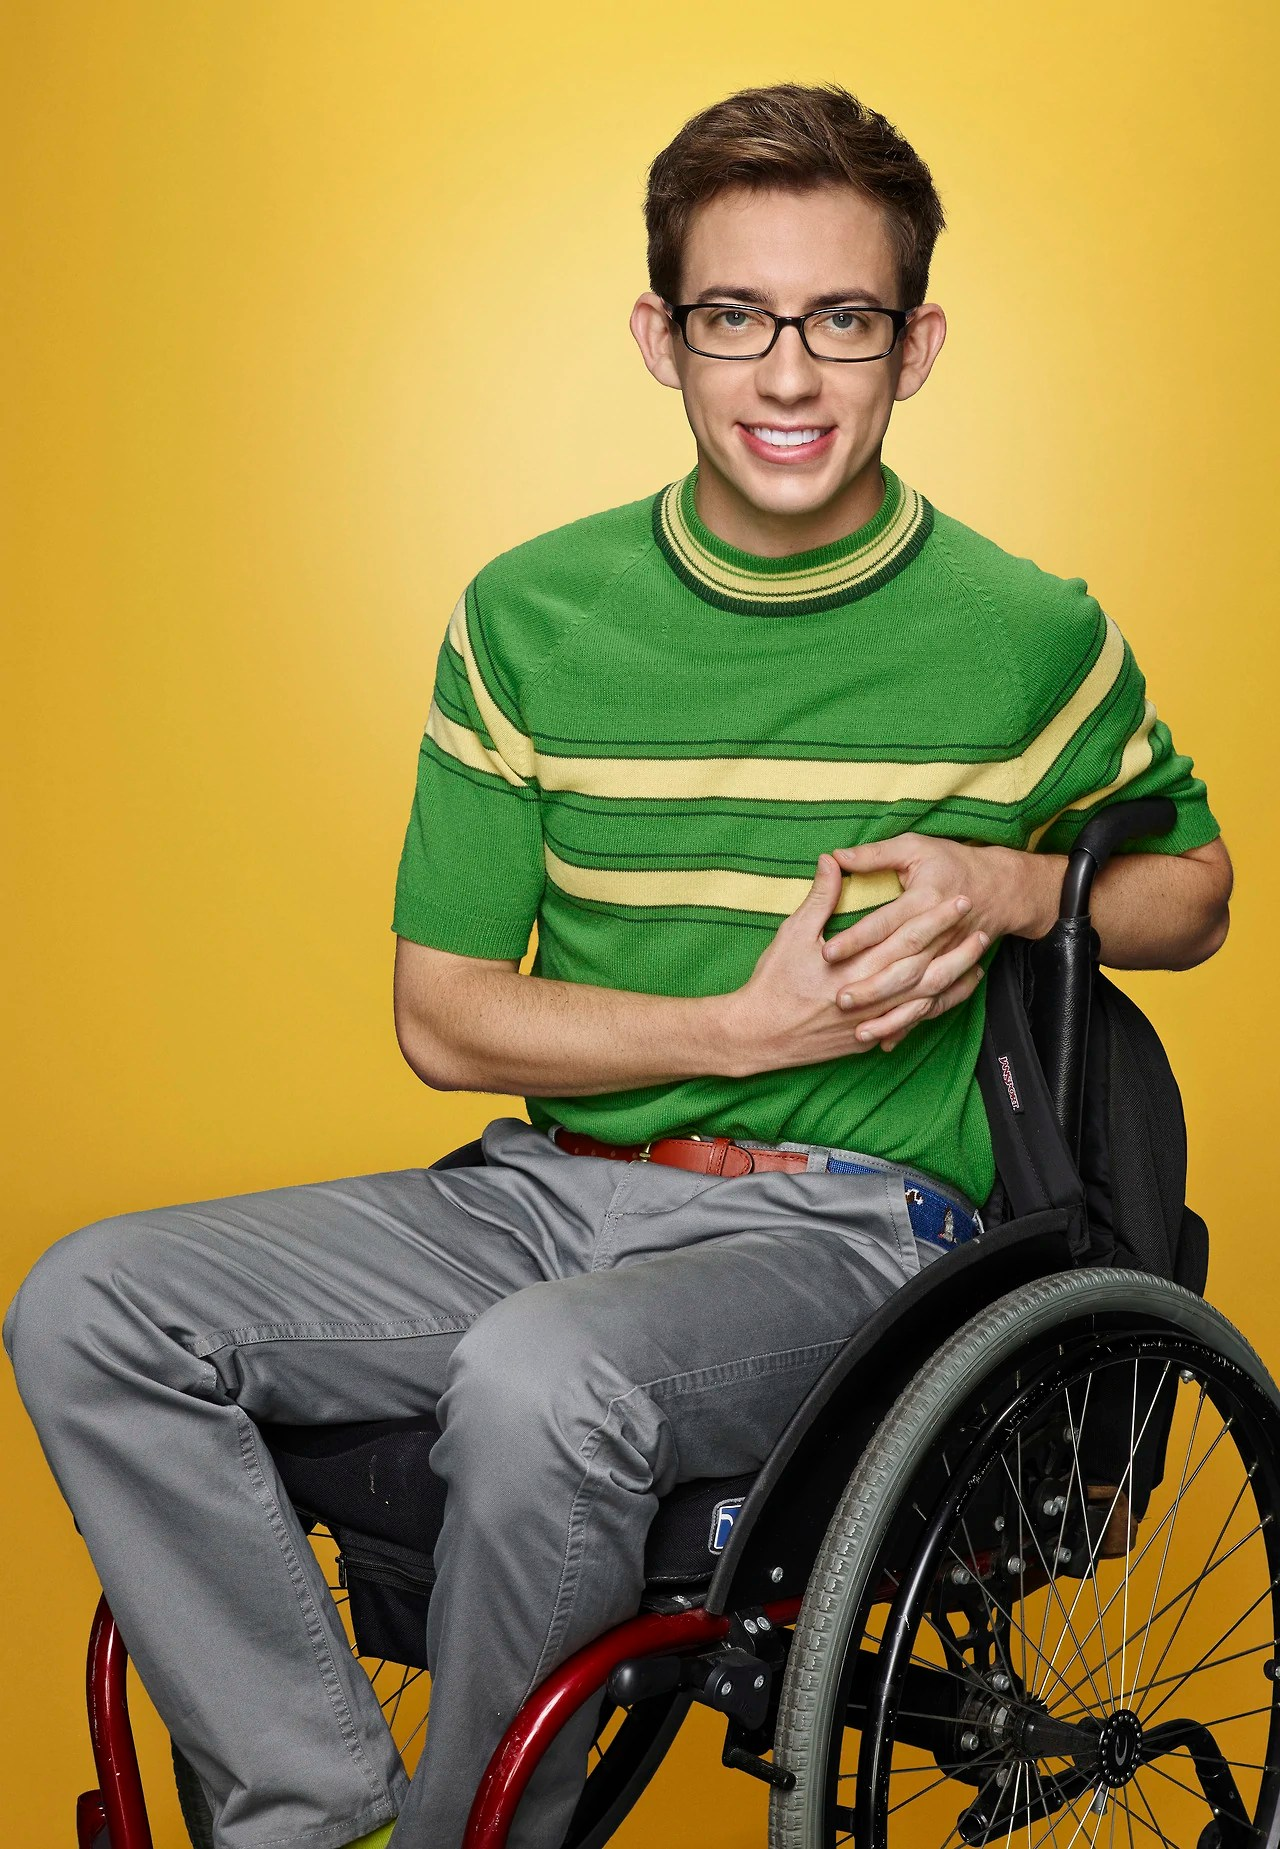 wheelchair glee felt chair protectors artie abrams tv show wiki fandom powered by wikia